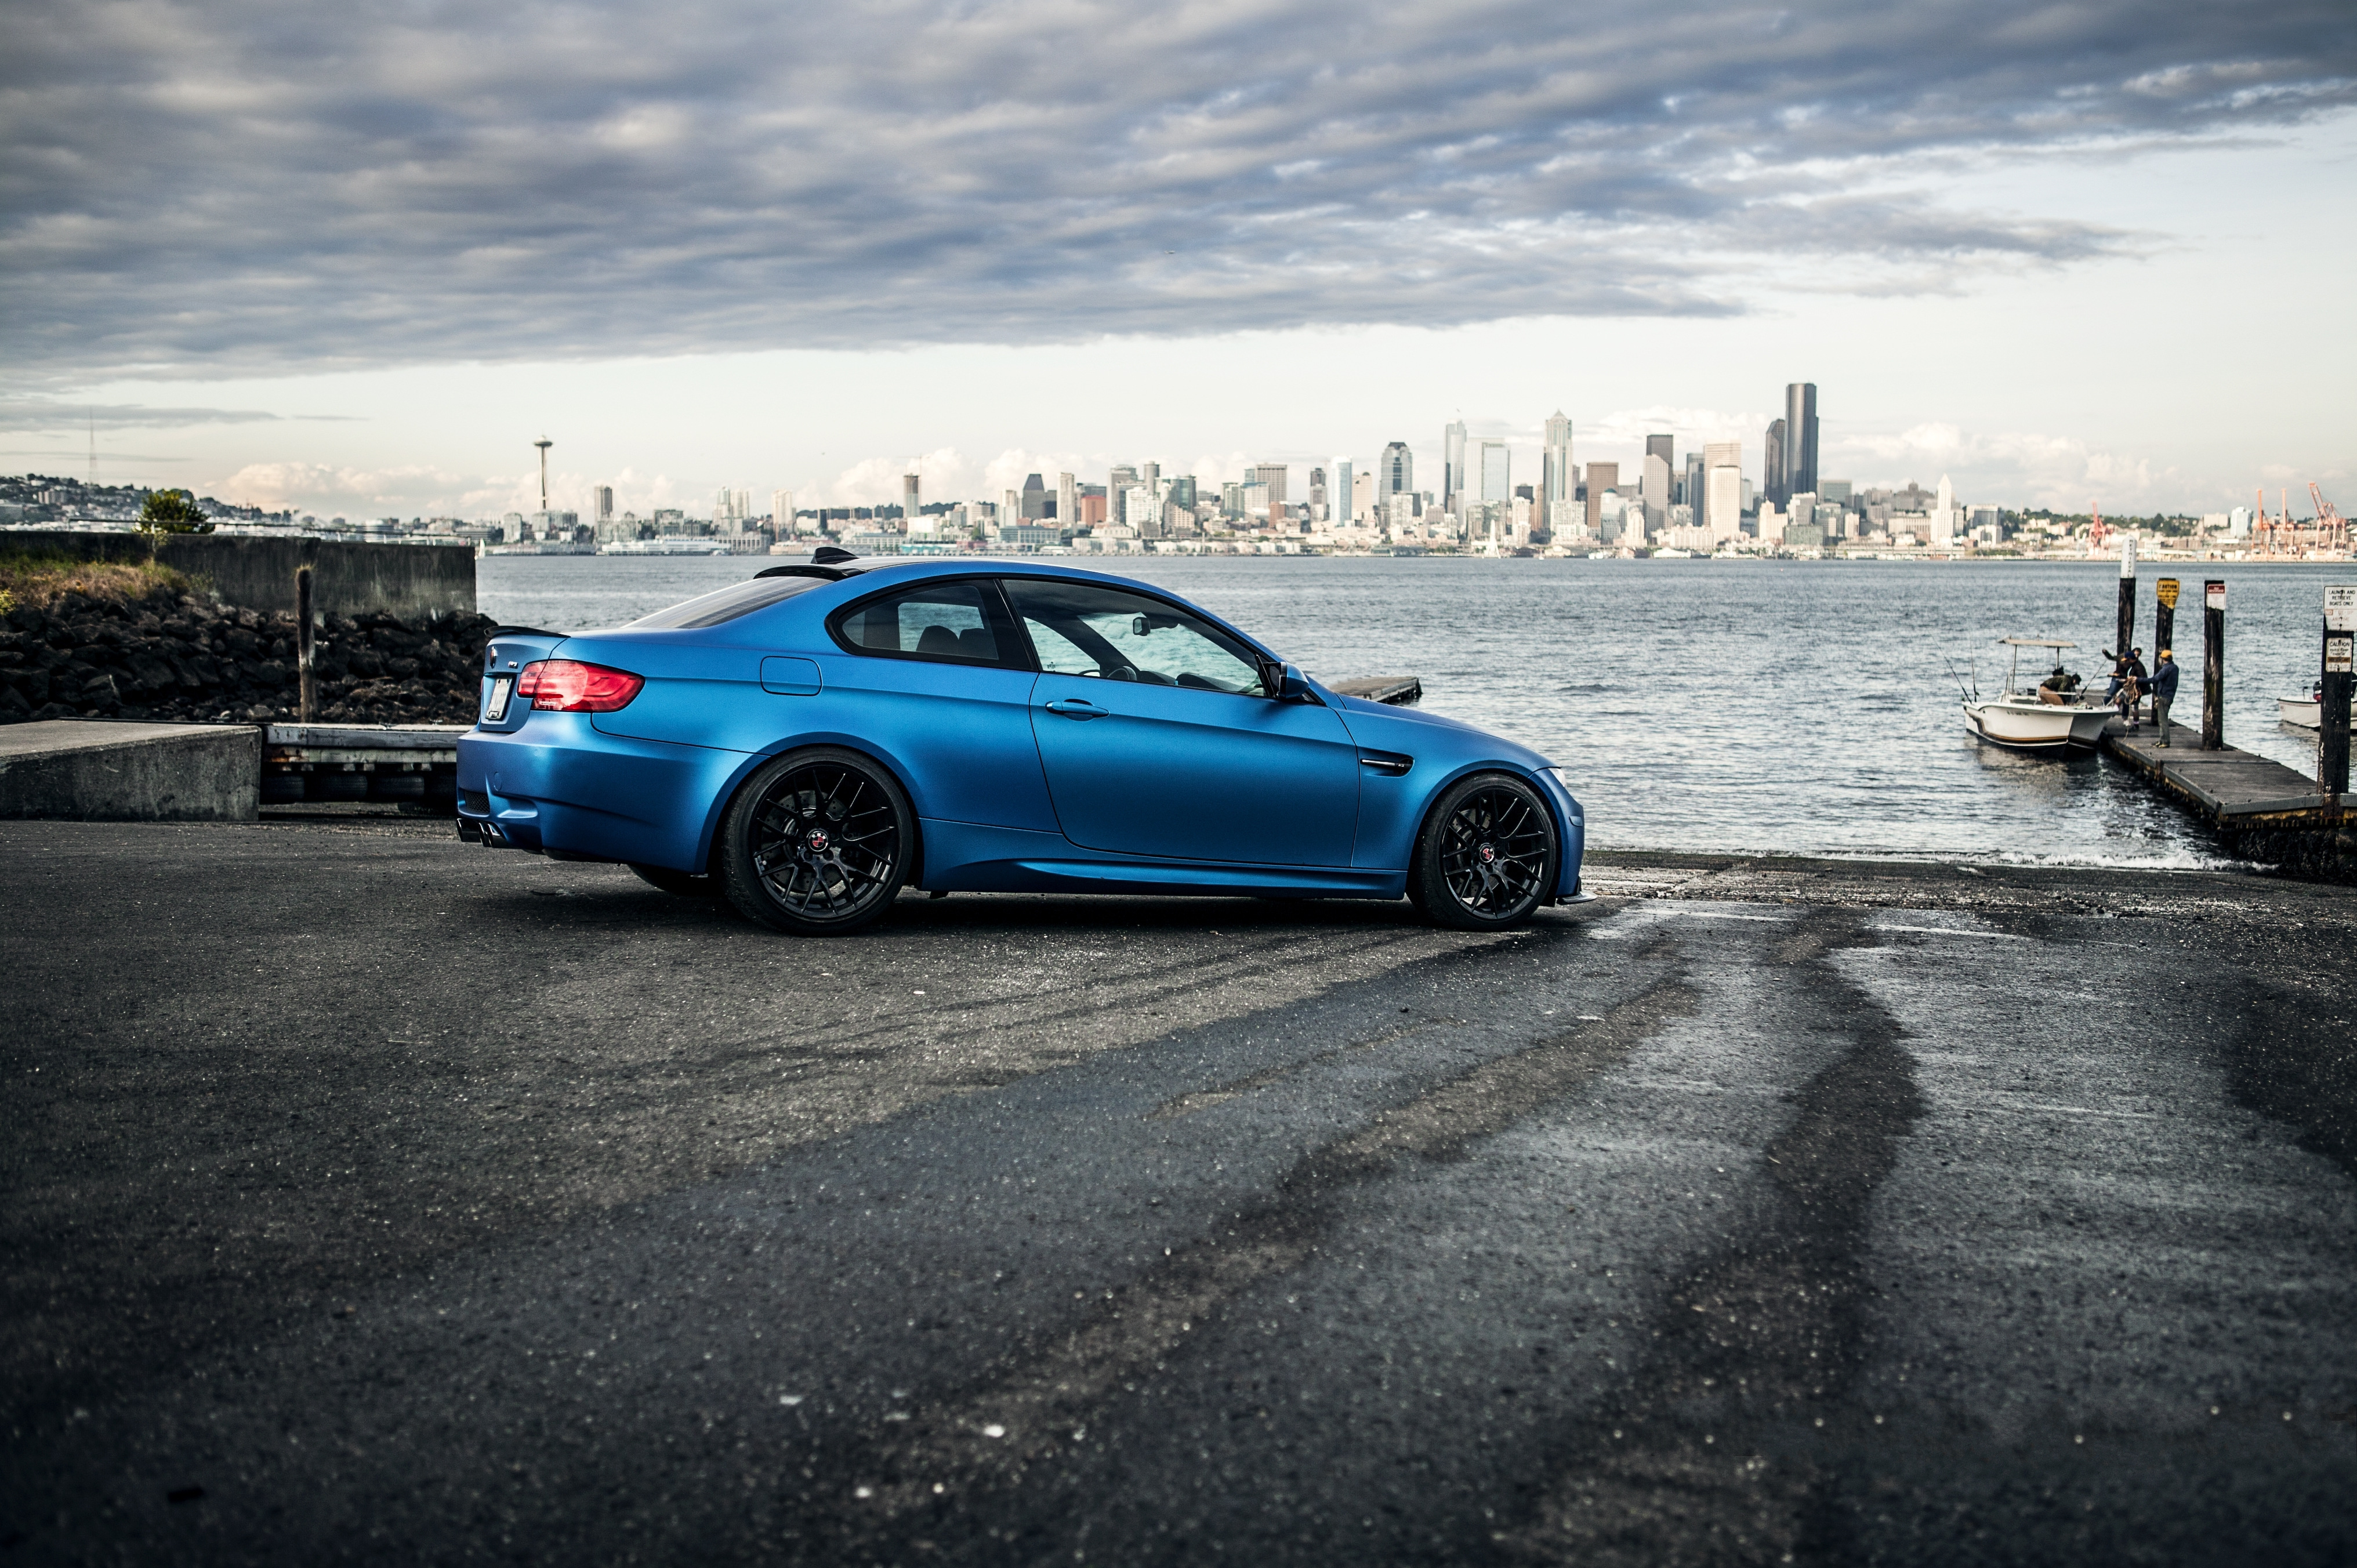 bmw m3 4k ultra hd wallpaper and background image